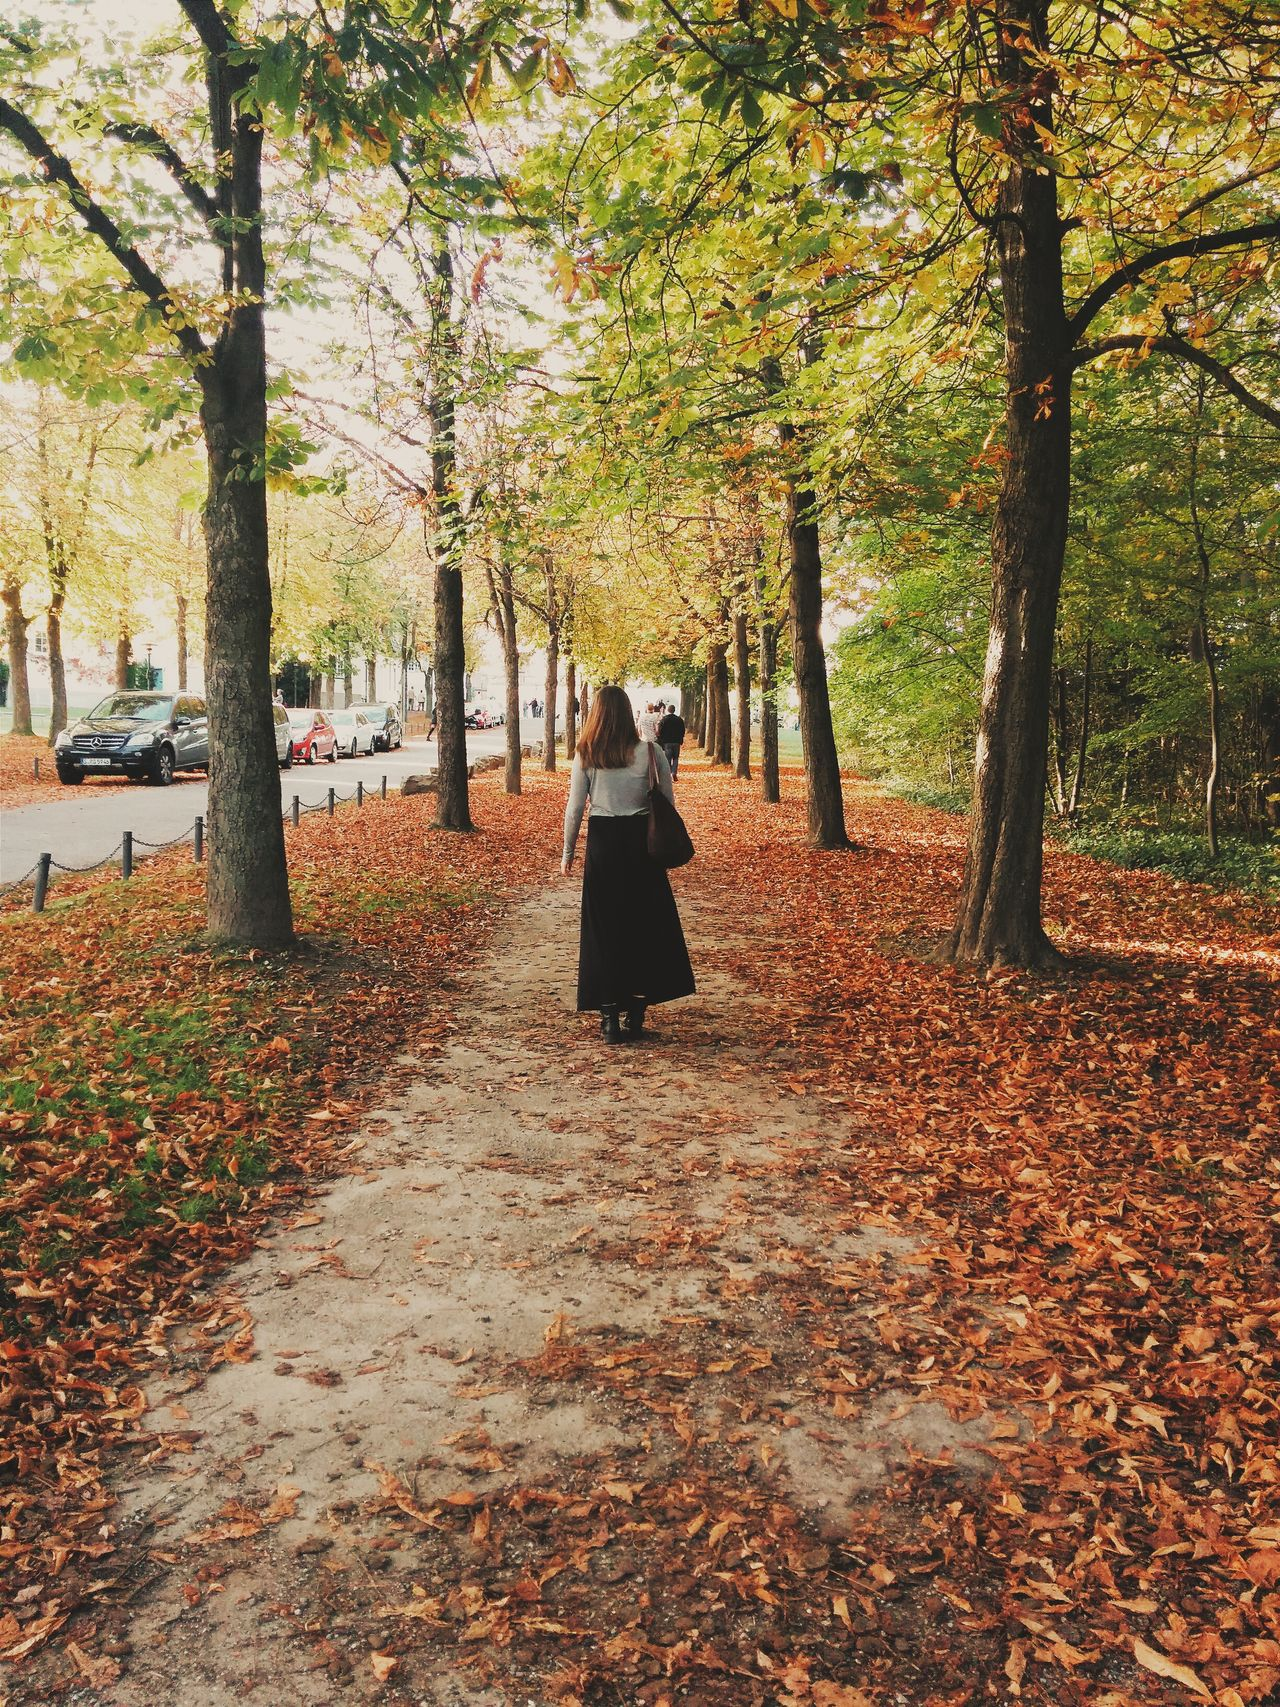 Woman walking away along park alley covered in autumn leaves